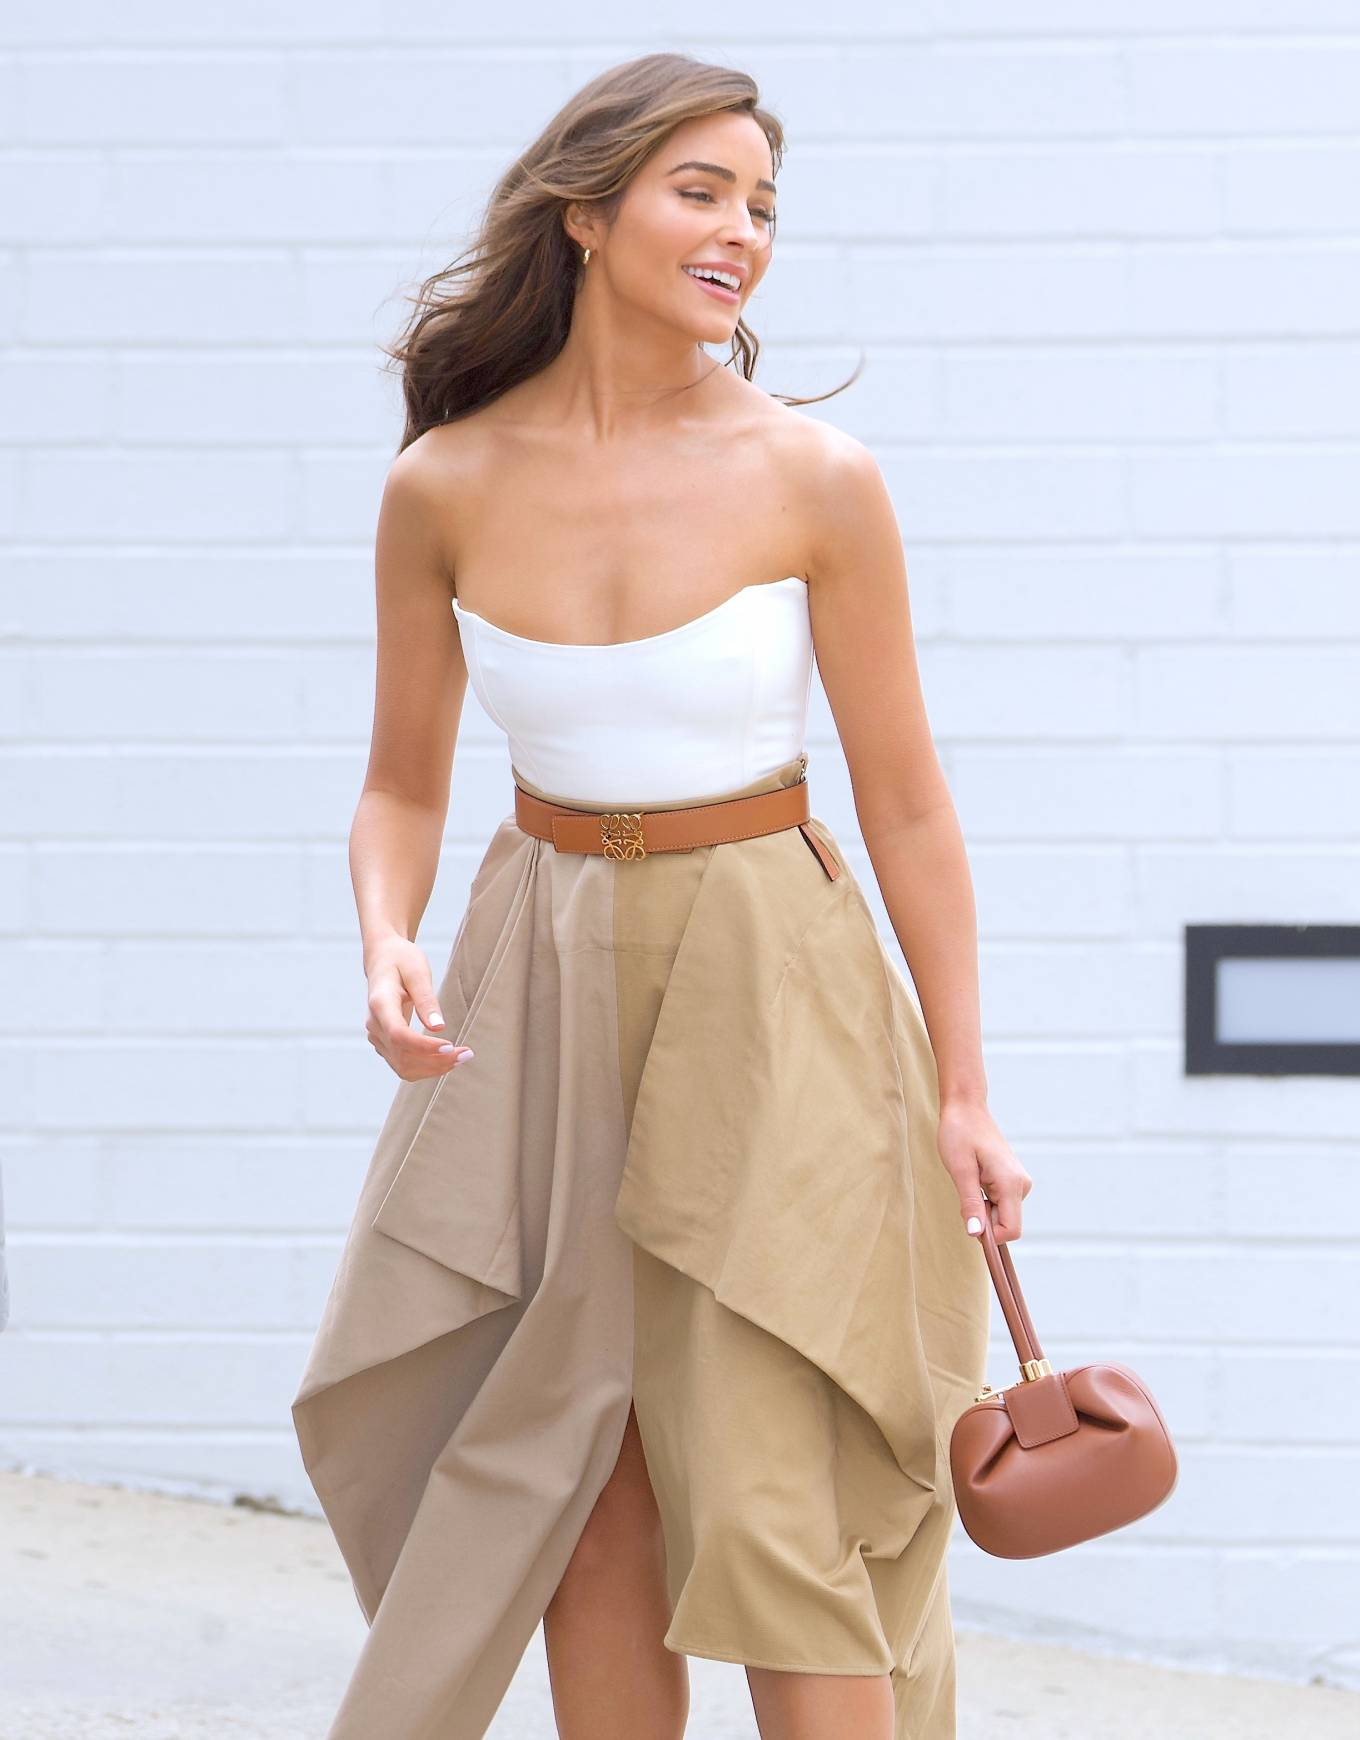 Olivia Culpo donning a figure hugging white corset with a scoop neck